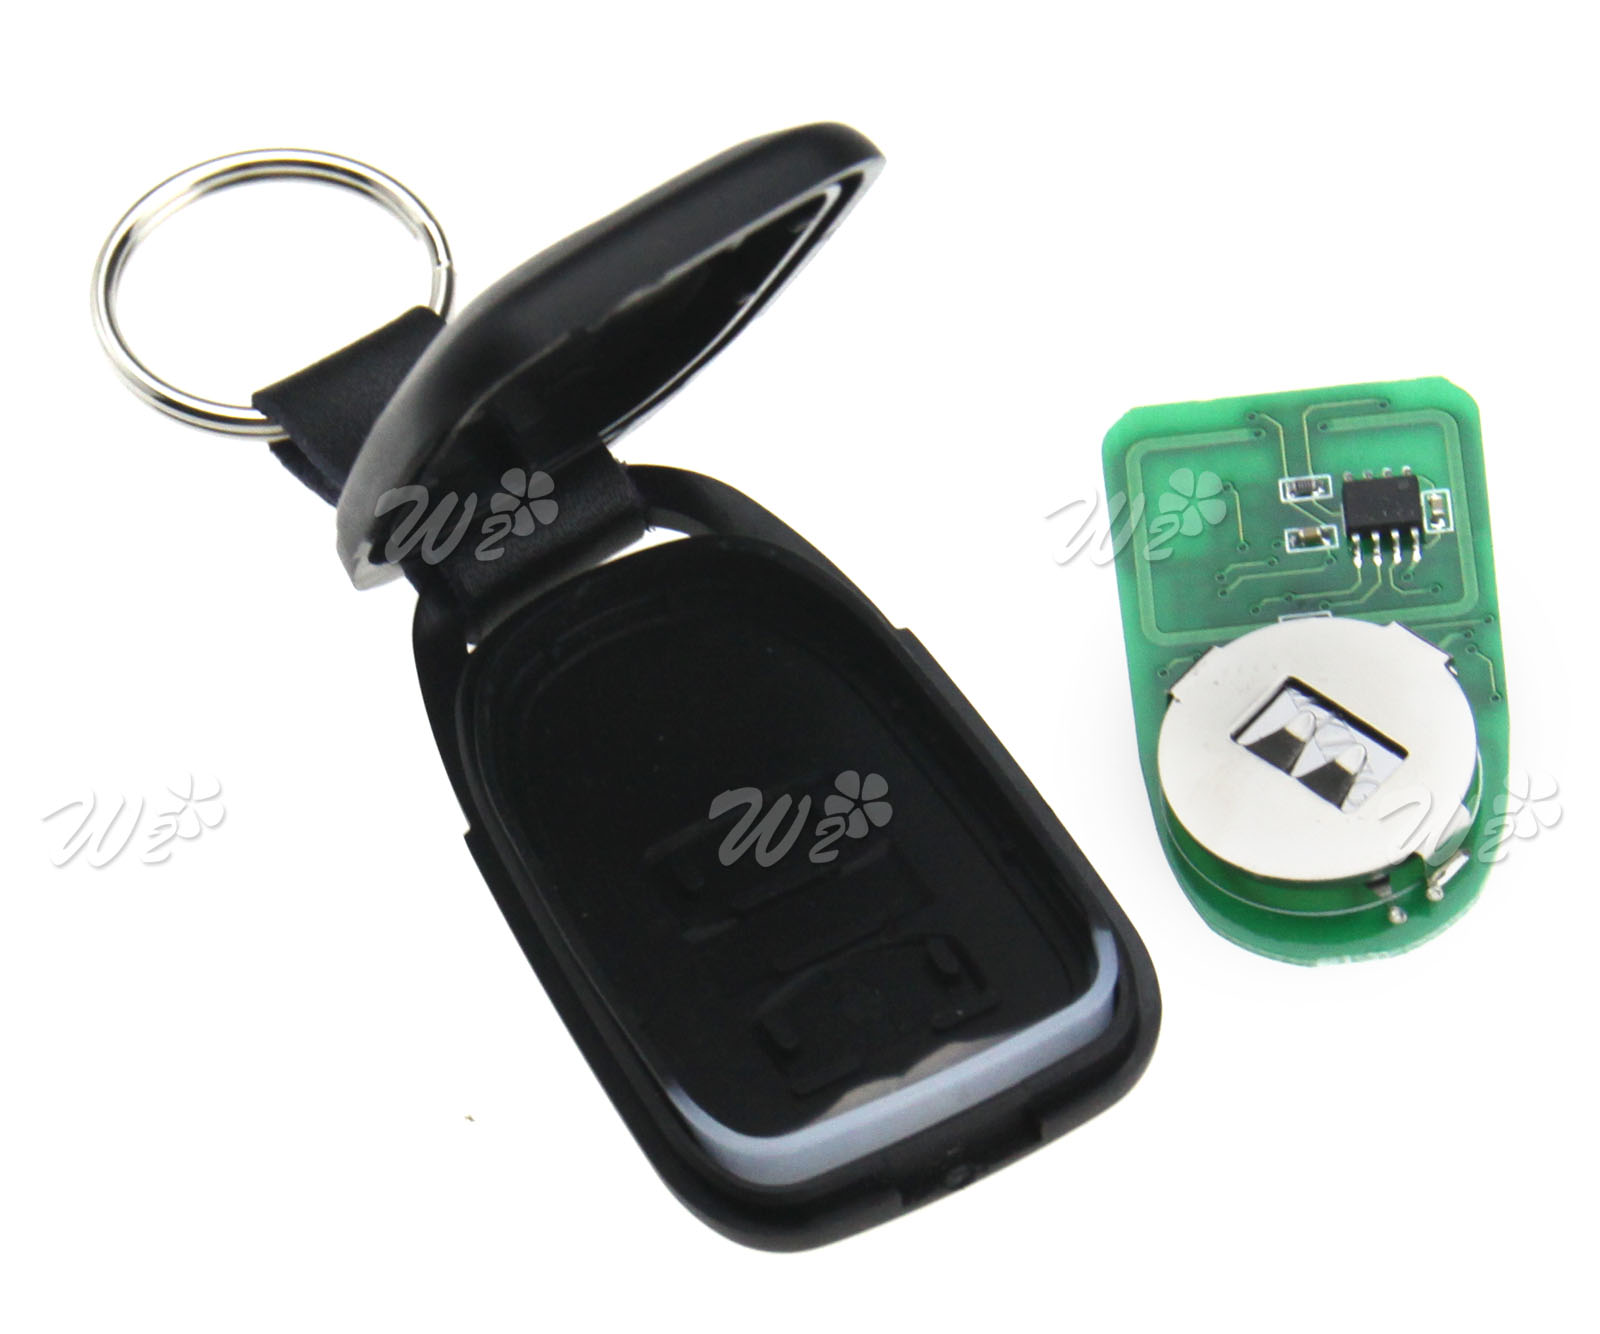 2PCS ABS Rolling Code 868MHz 2 Button Remote Control Fob For FAAC XT2 868SLH LR